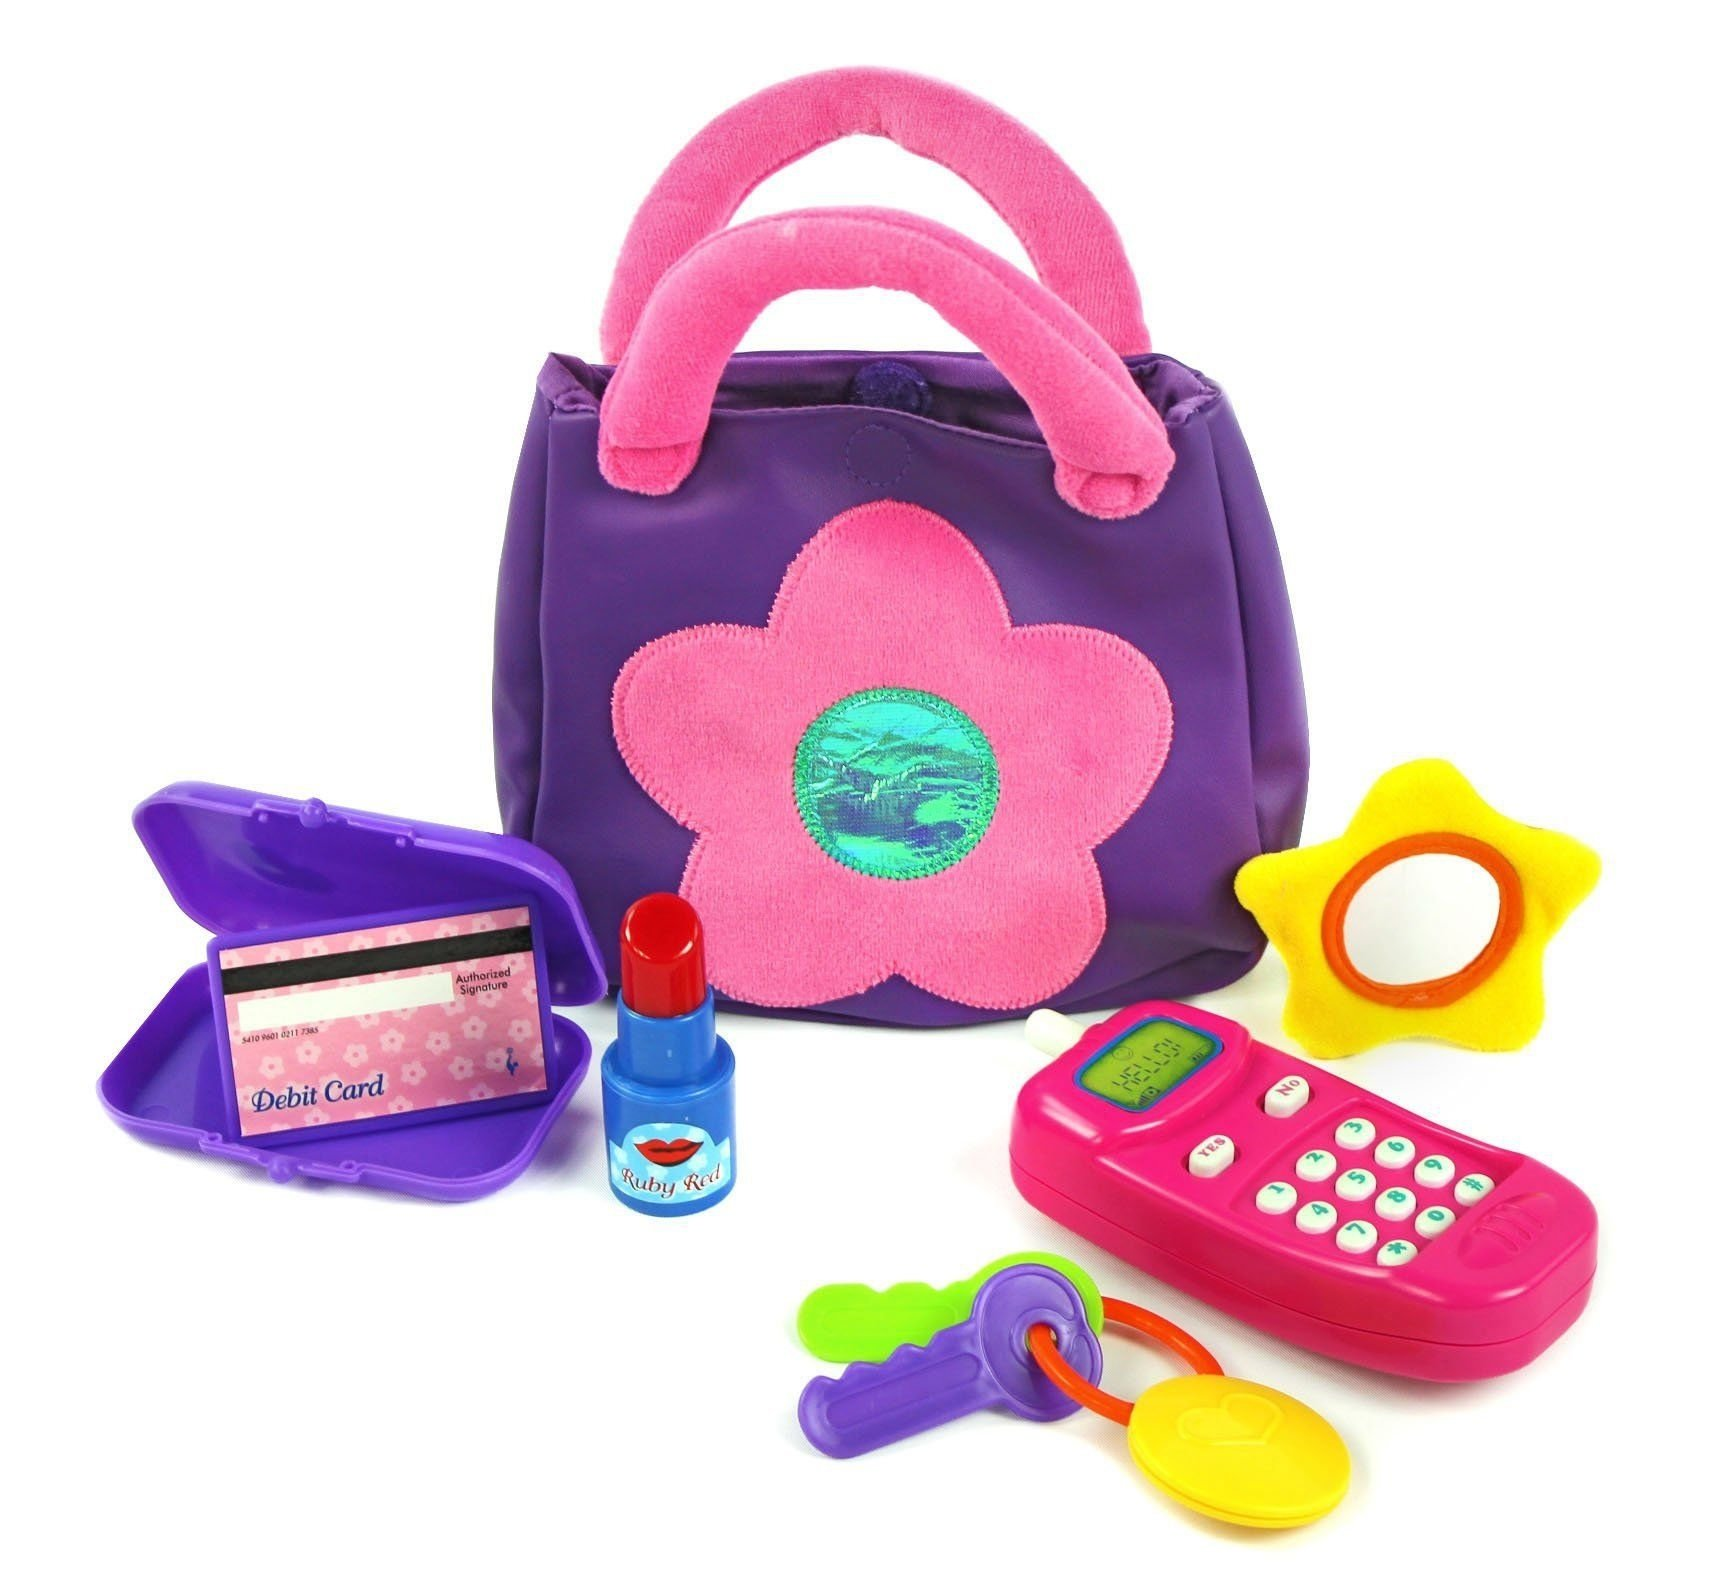 10 Most Recommended Gift Ideas 2 Year Old Girl whatre the best toys for 2 year old girls in 2018 toy gift and babies 2020